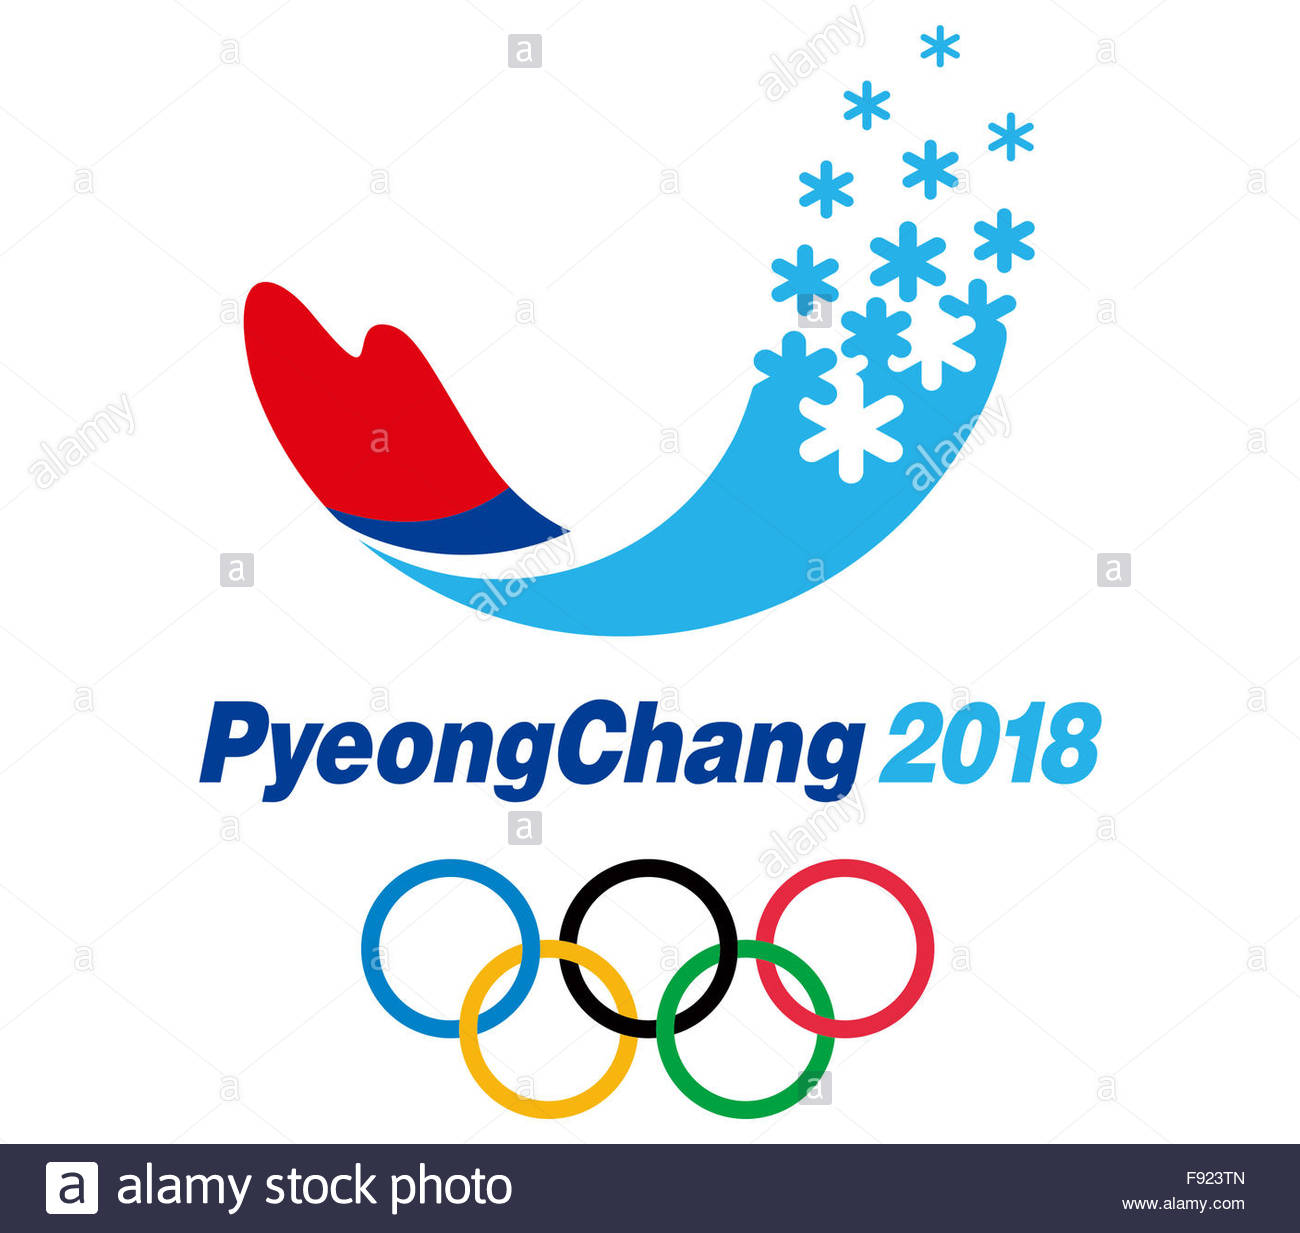 Pyeongchang 2018 olympic games logo icon symbol stock photo pyeongchang 2018 olympic games logo icon symbol biocorpaavc Images